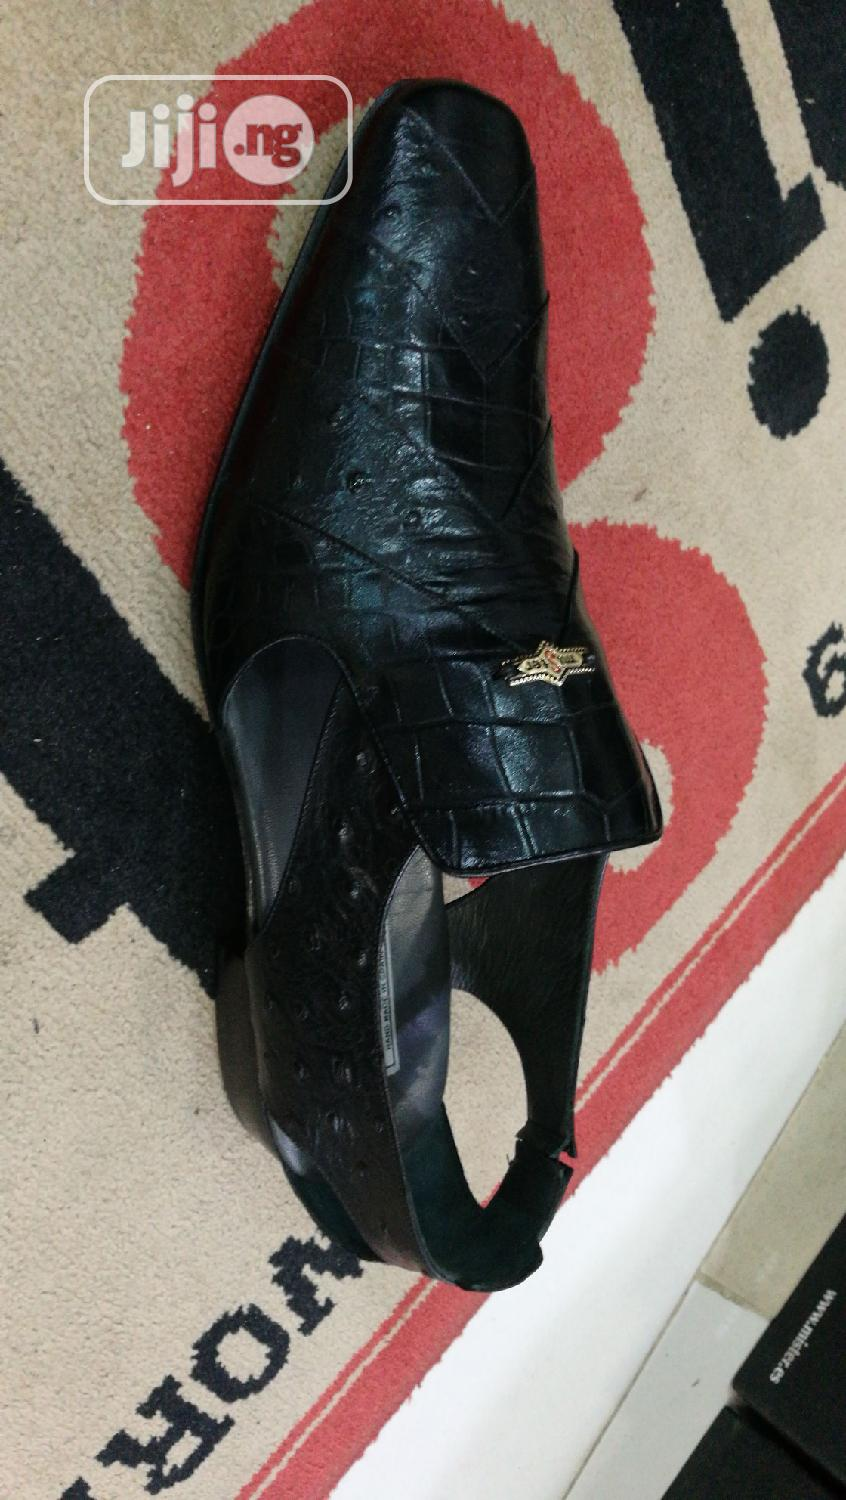 Original Brand Spain Hand-Made Mister Shoe Sandals   Shoes for sale in Lagos Island, Lagos State, Nigeria